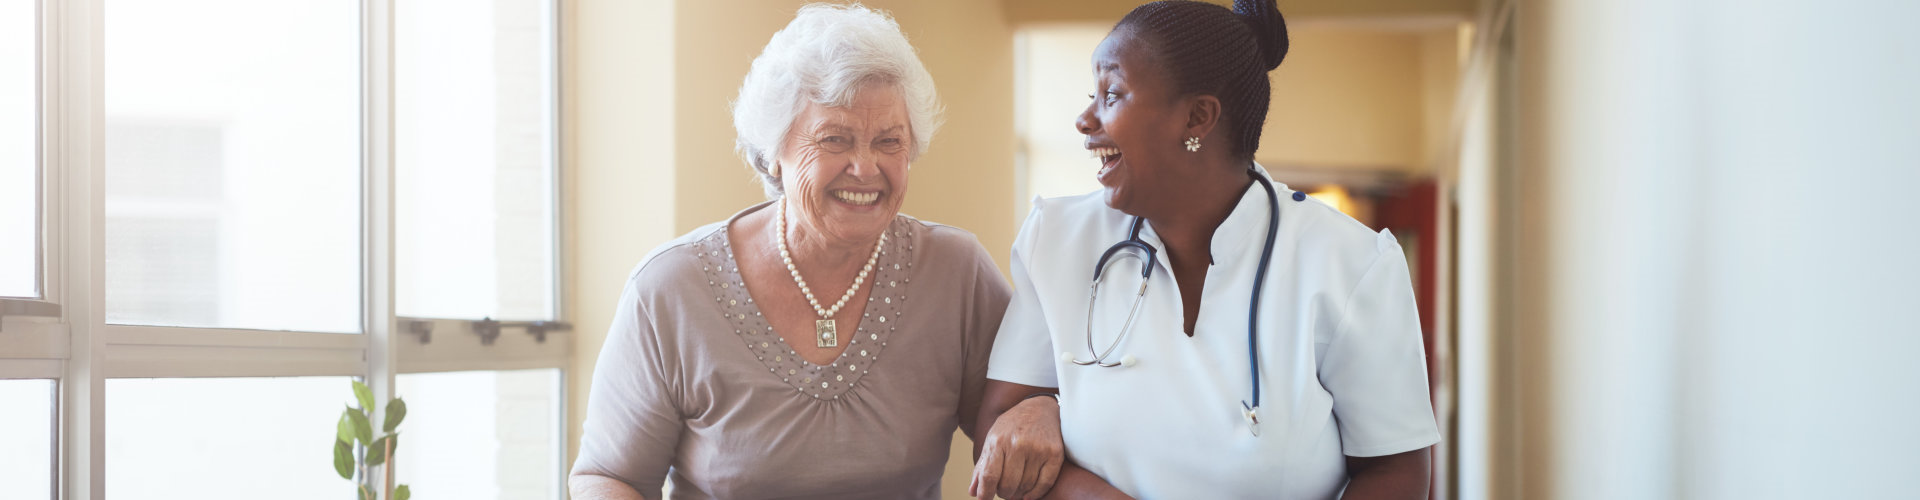 caregiver and old woman walking on a hallway